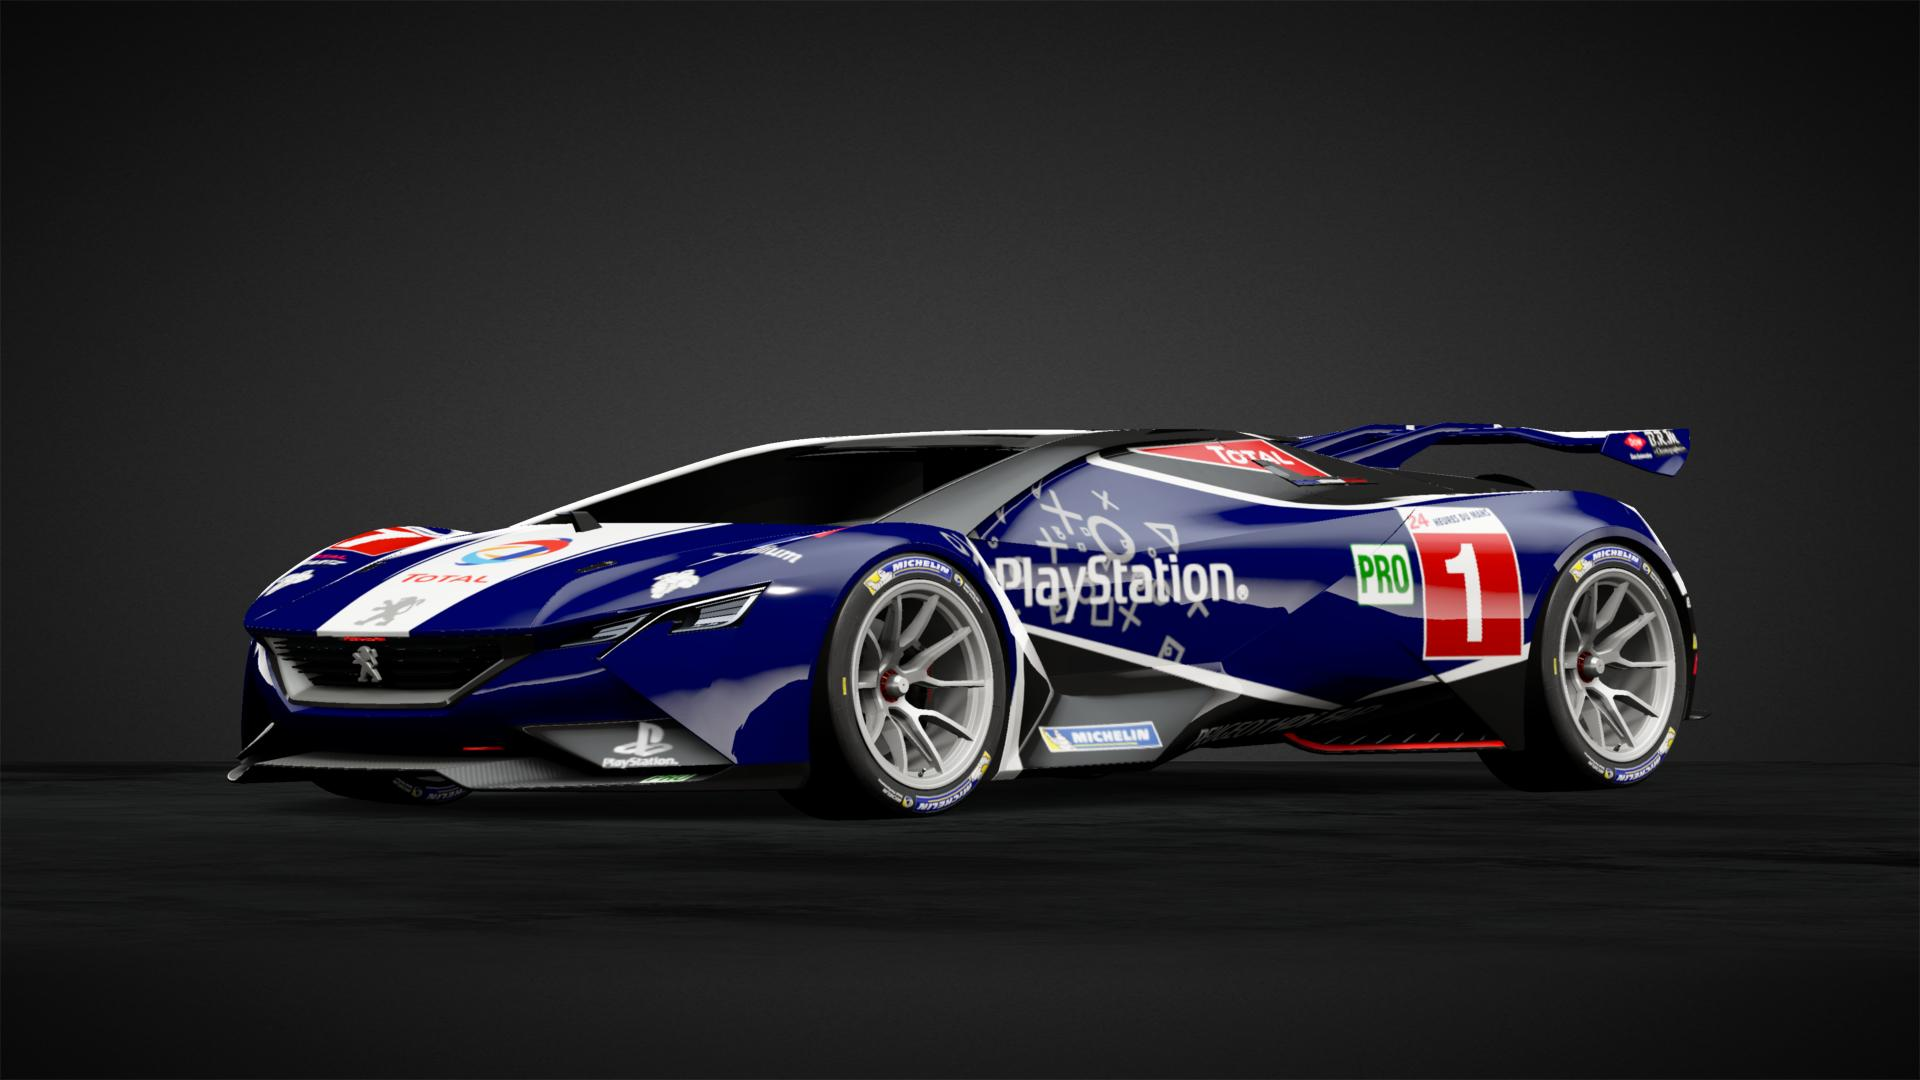 Peugeot 908 HDi FAP livery - Car Livery by Stephen220378